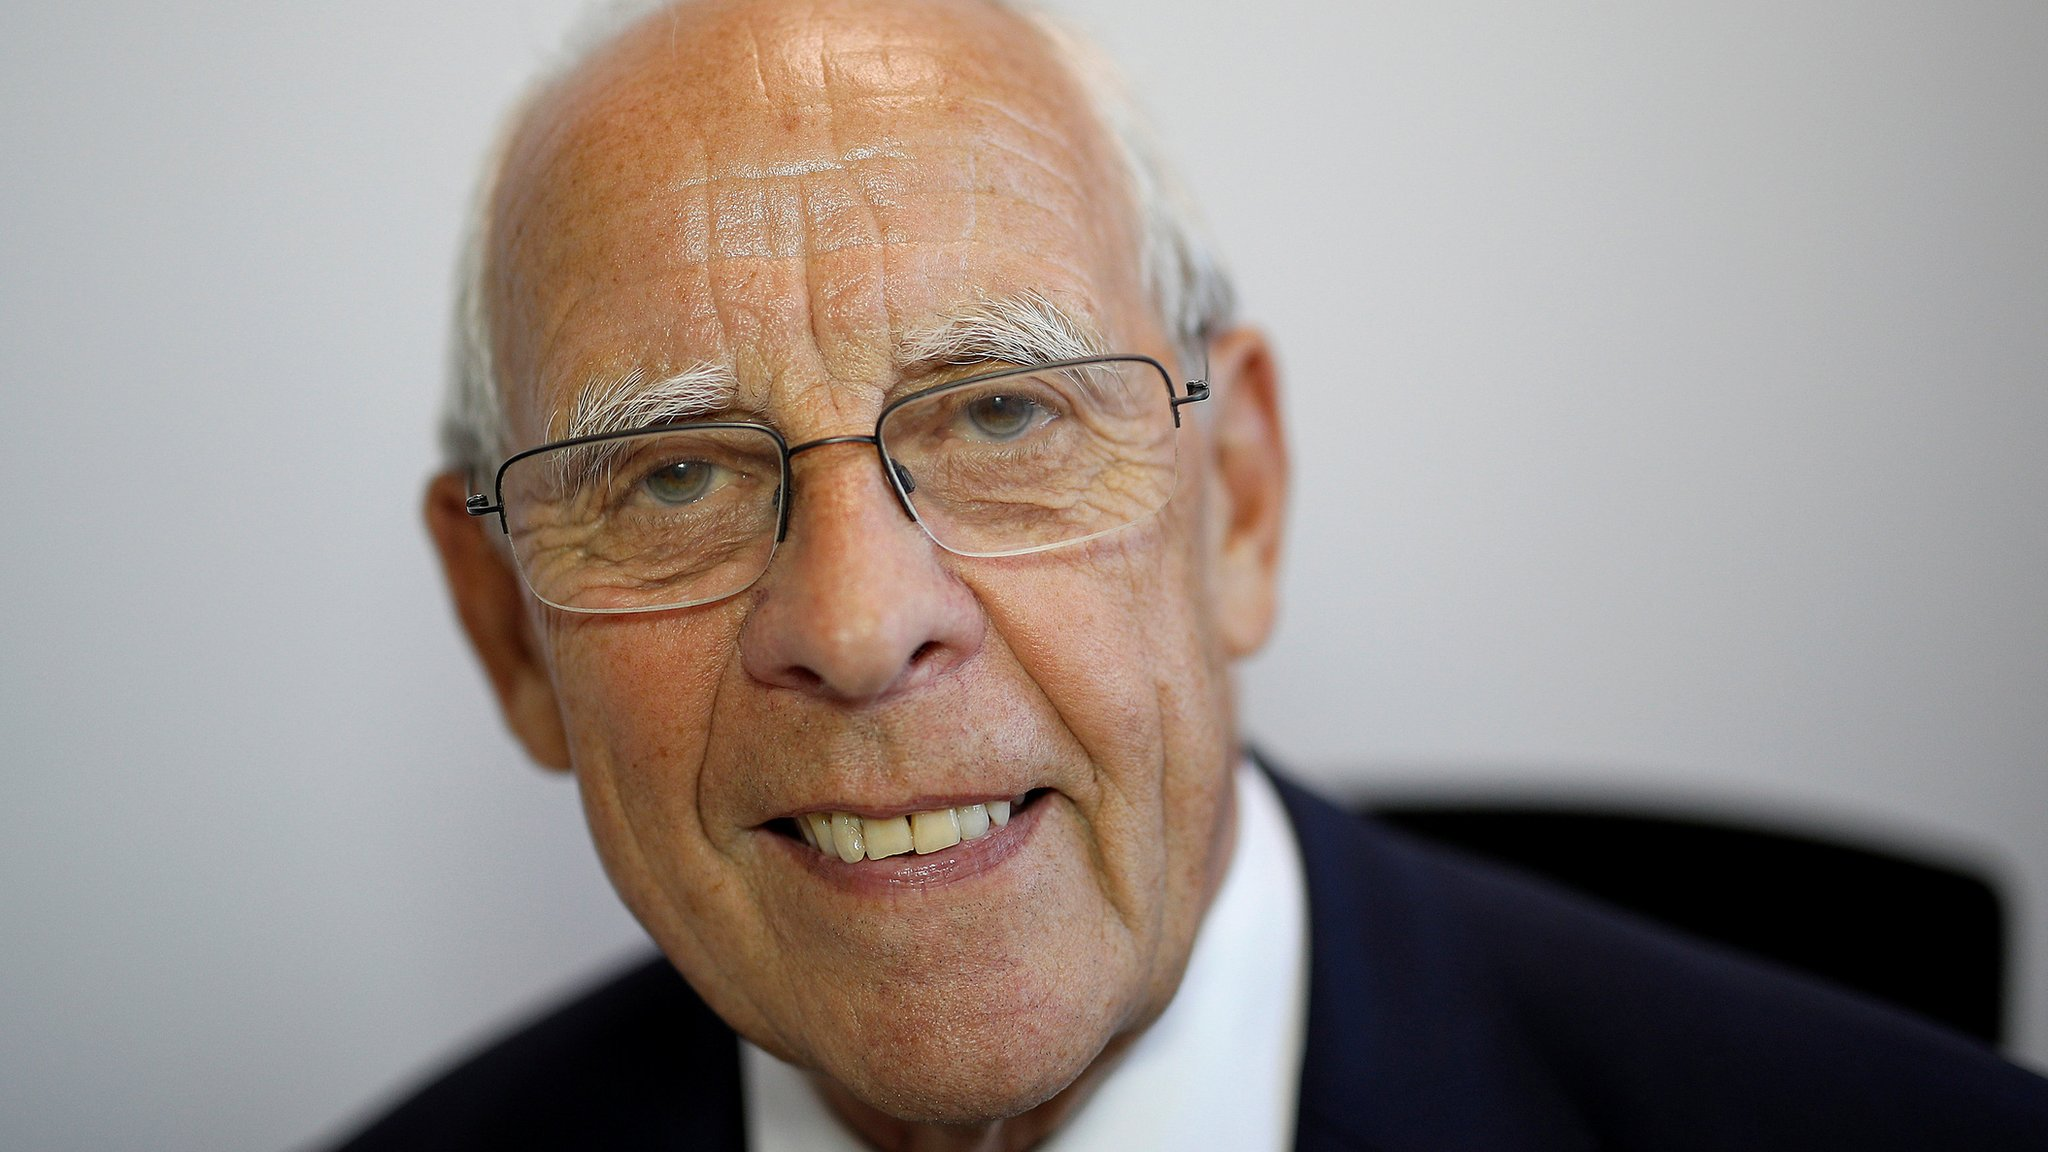 Football has never been cleaner - Stoke chairman Coates